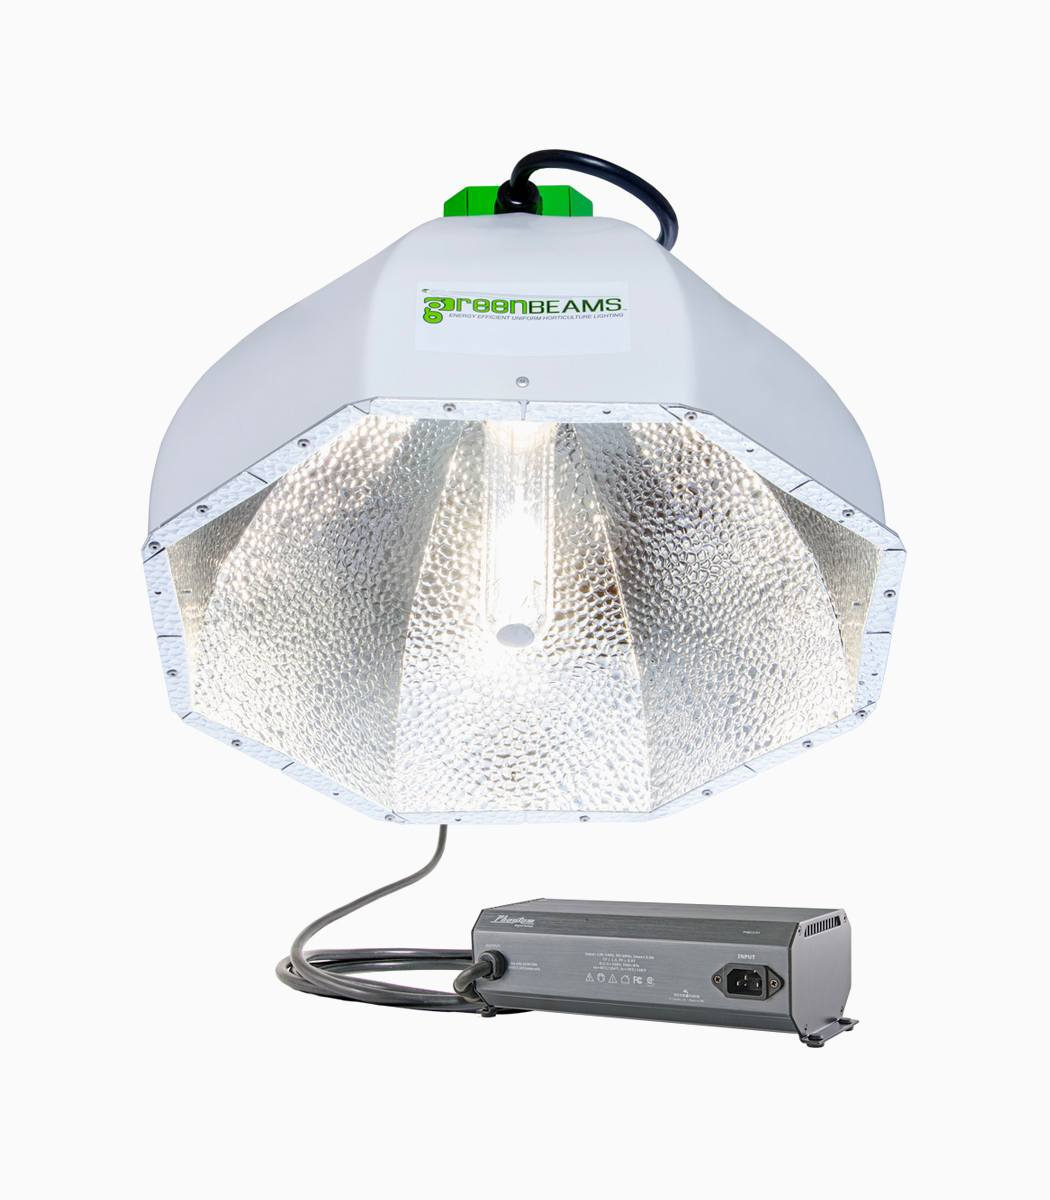 Greenbeams CMH Reflector With Phantom CMH Ballast And 4200K Lamp